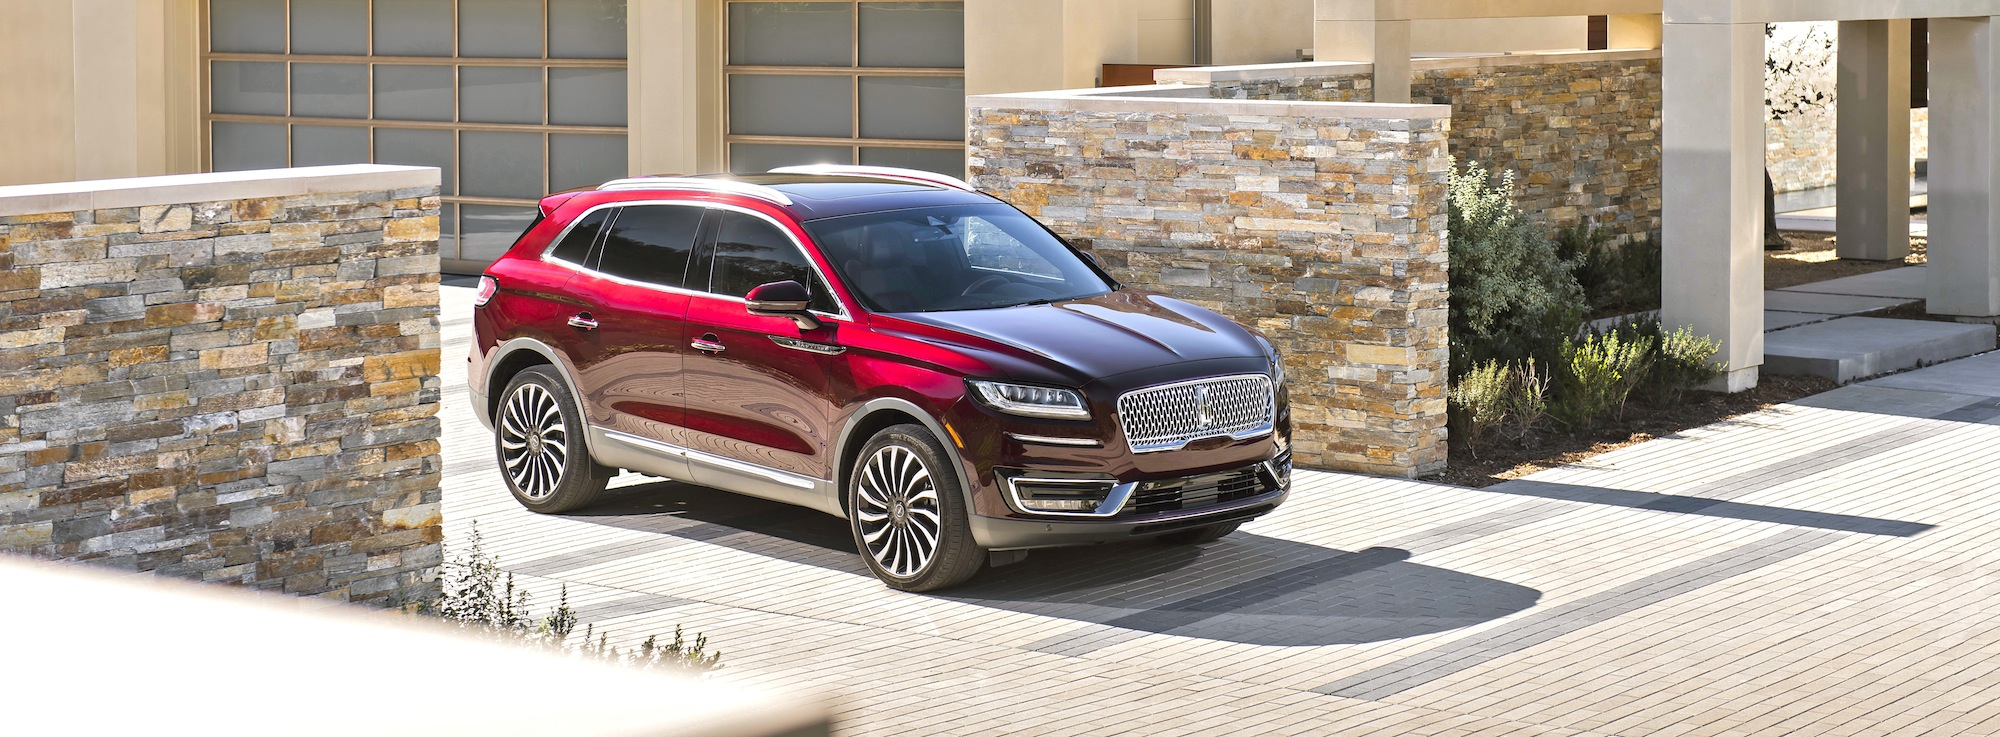 2019 Lincoln Nautilus: Mid-Size SUV Gets A Name, Drops Alphabet Soup